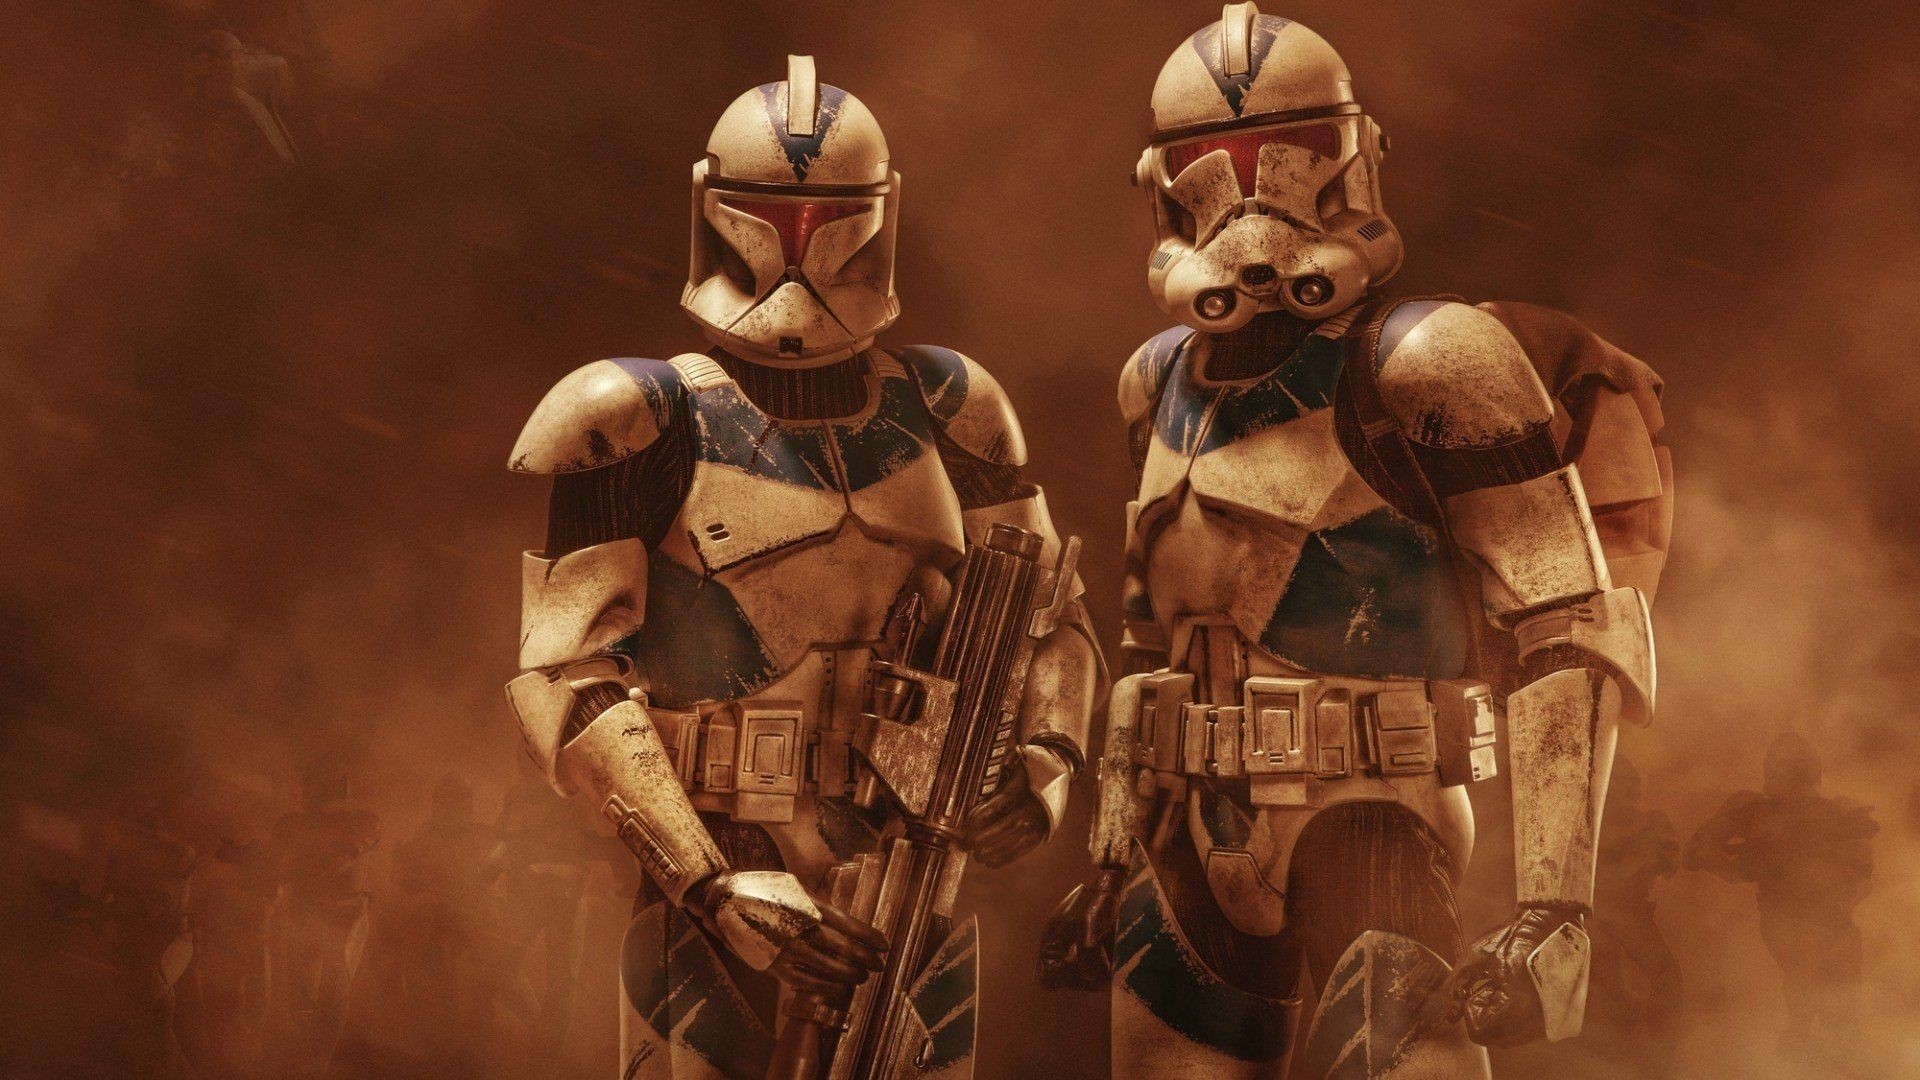 1920x1080 Imperial stormtroopers in Star Wars wallpapers and images .